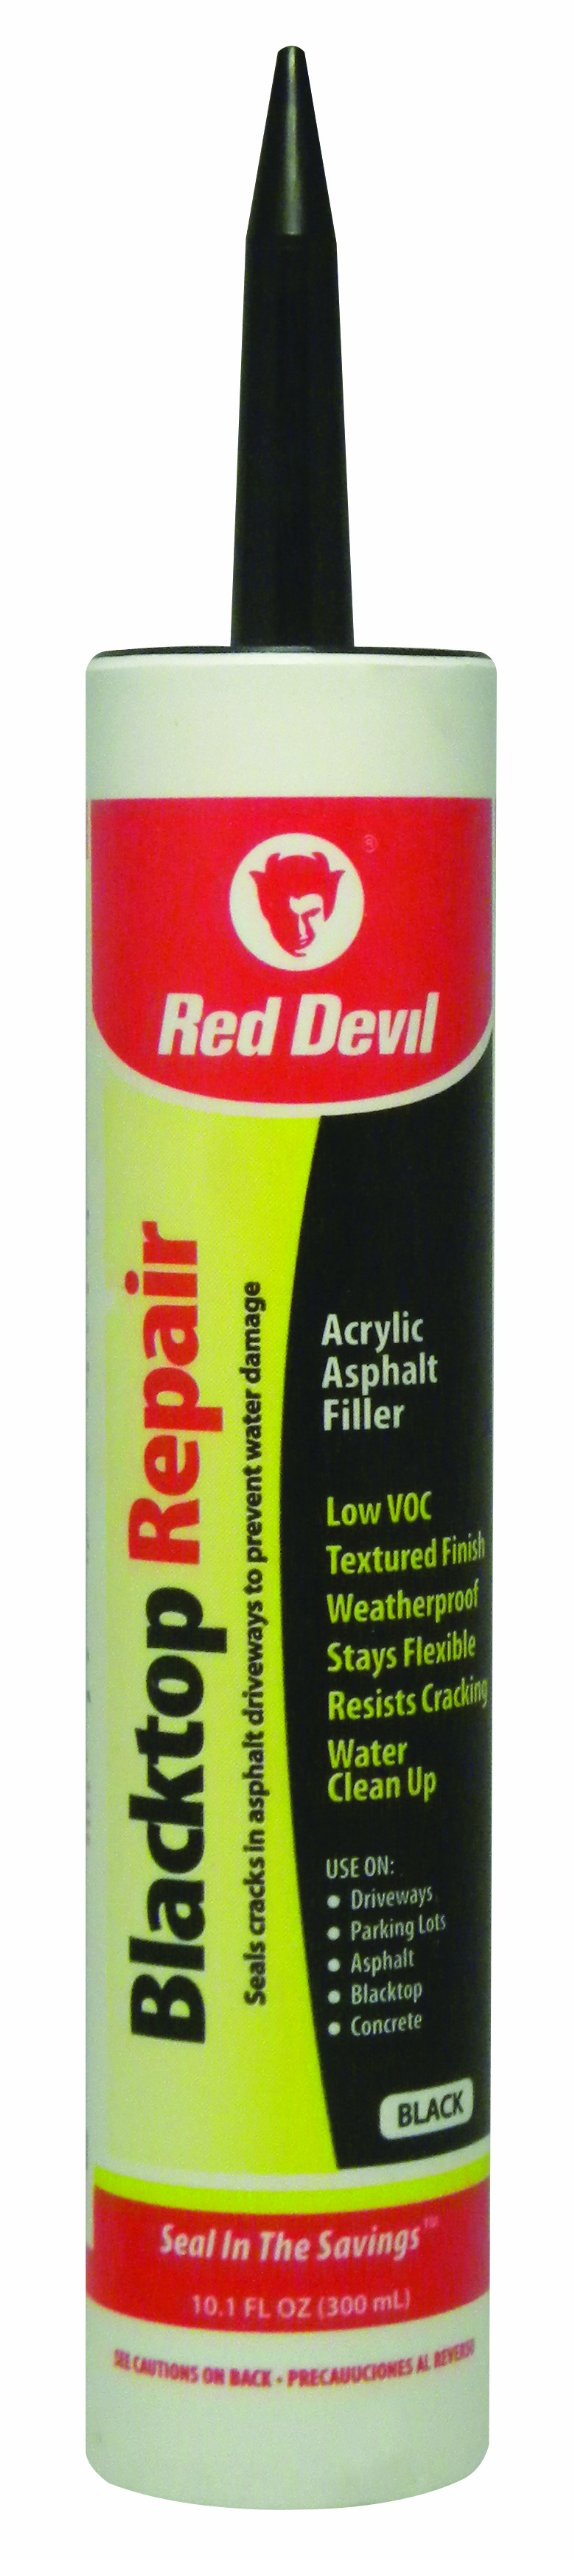 Red Devil 0637 10 1 Ounce Blacktop